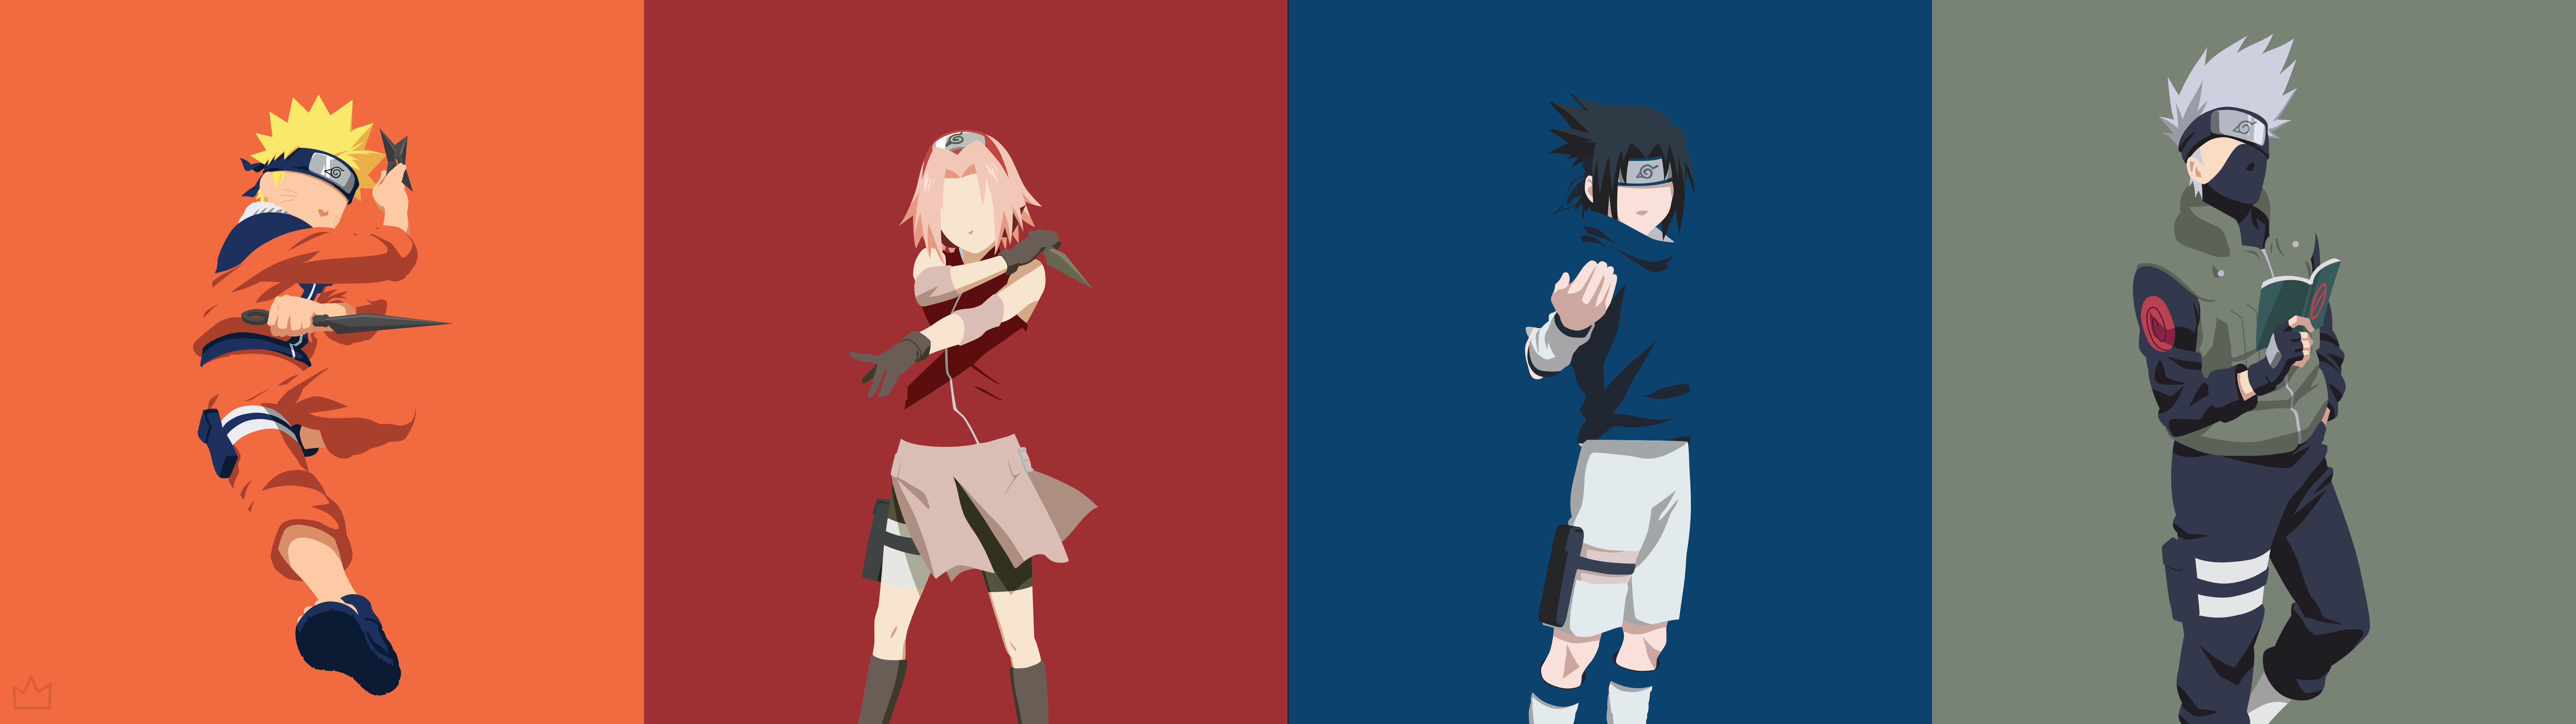 Naruto Dual Monitor Wallpaper Posted By Ethan Anderson